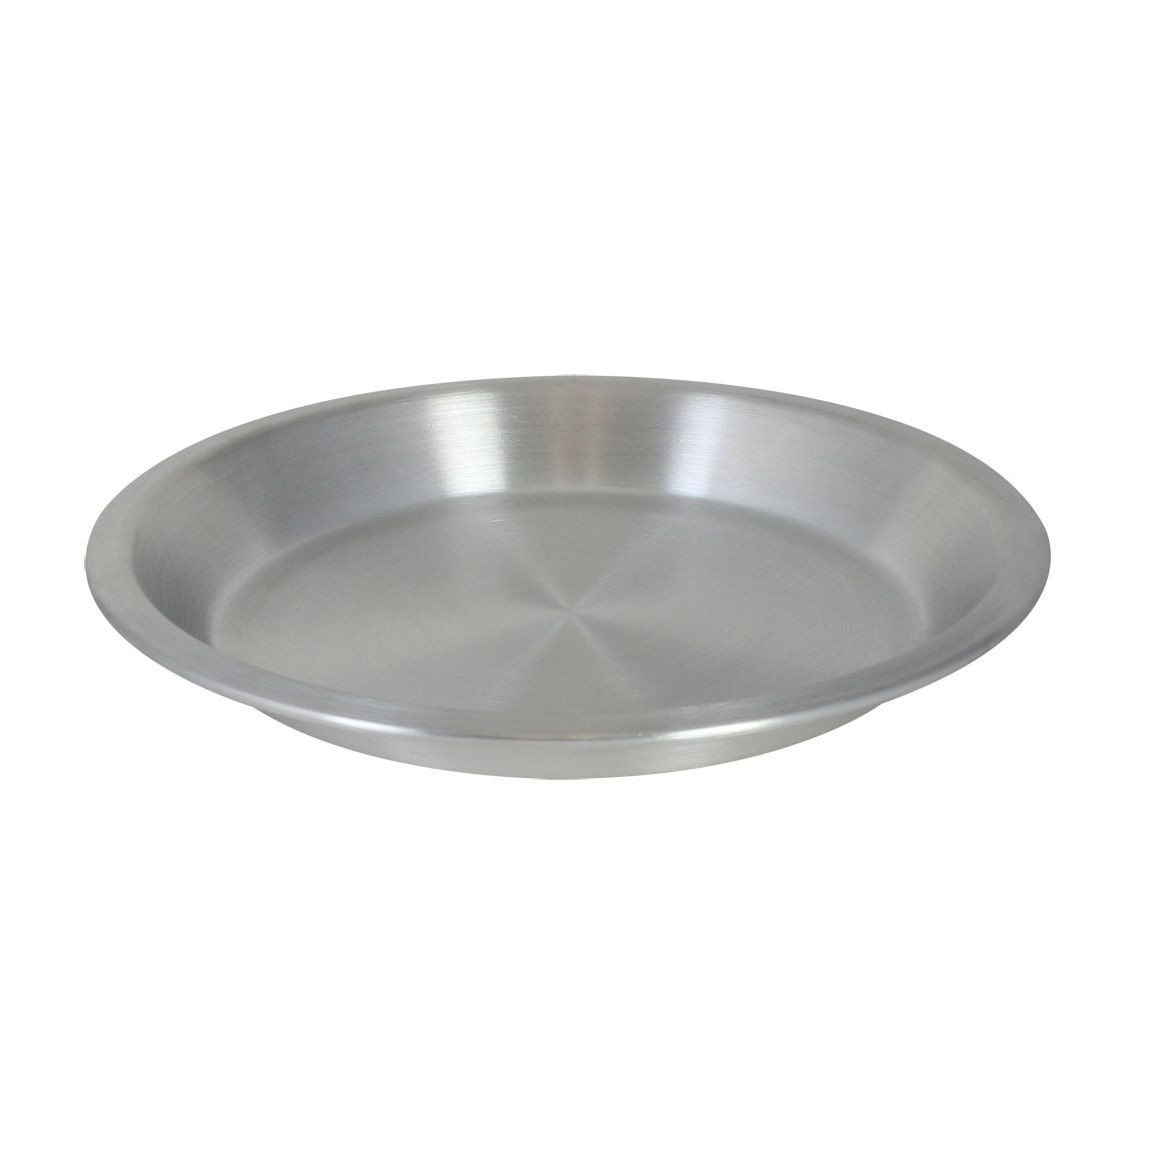 Thunder Group ALPN011 Pie Pan 11""